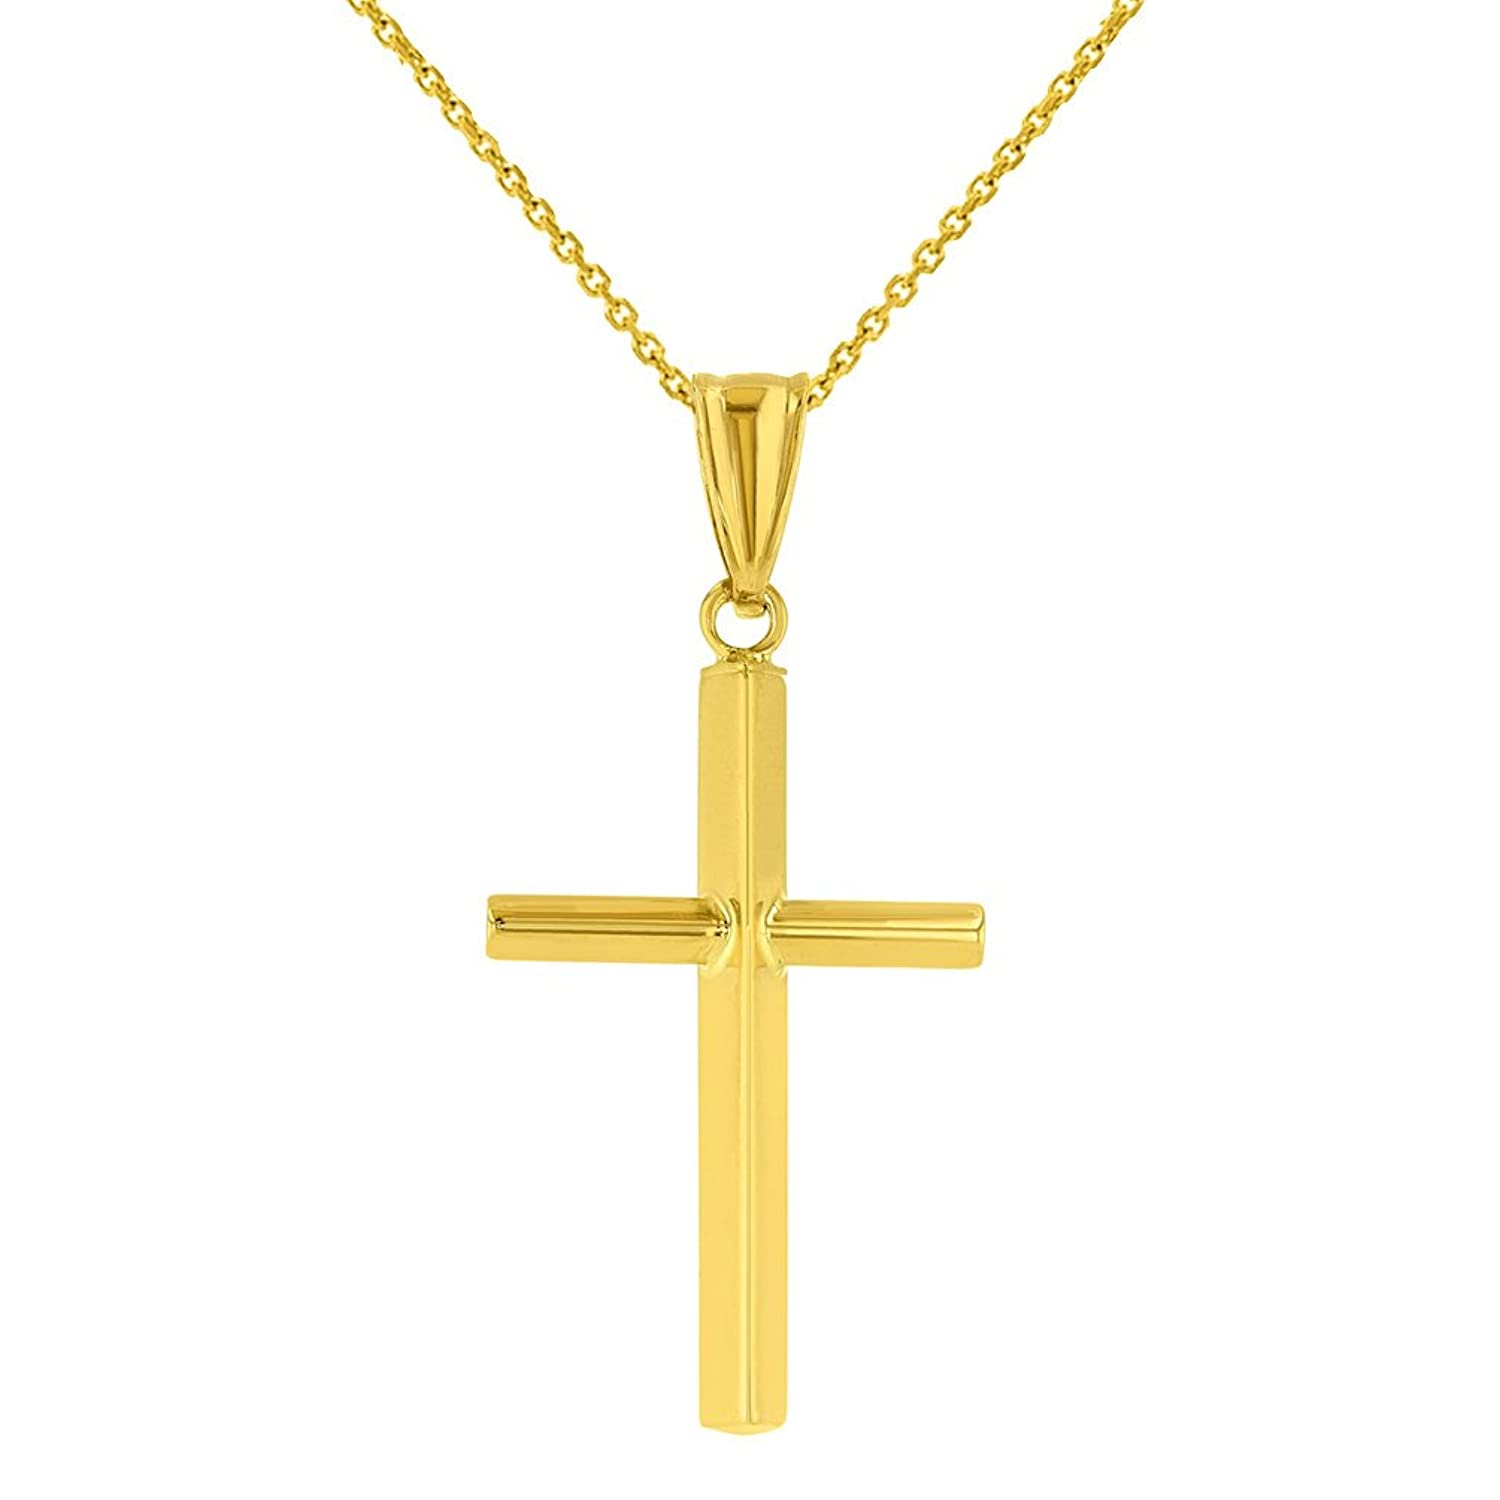 Give him a mens gold cross necklace to honor his faith high polished 14k yellow gold plain slender cross pendant with chain necklace aloadofball Choice Image